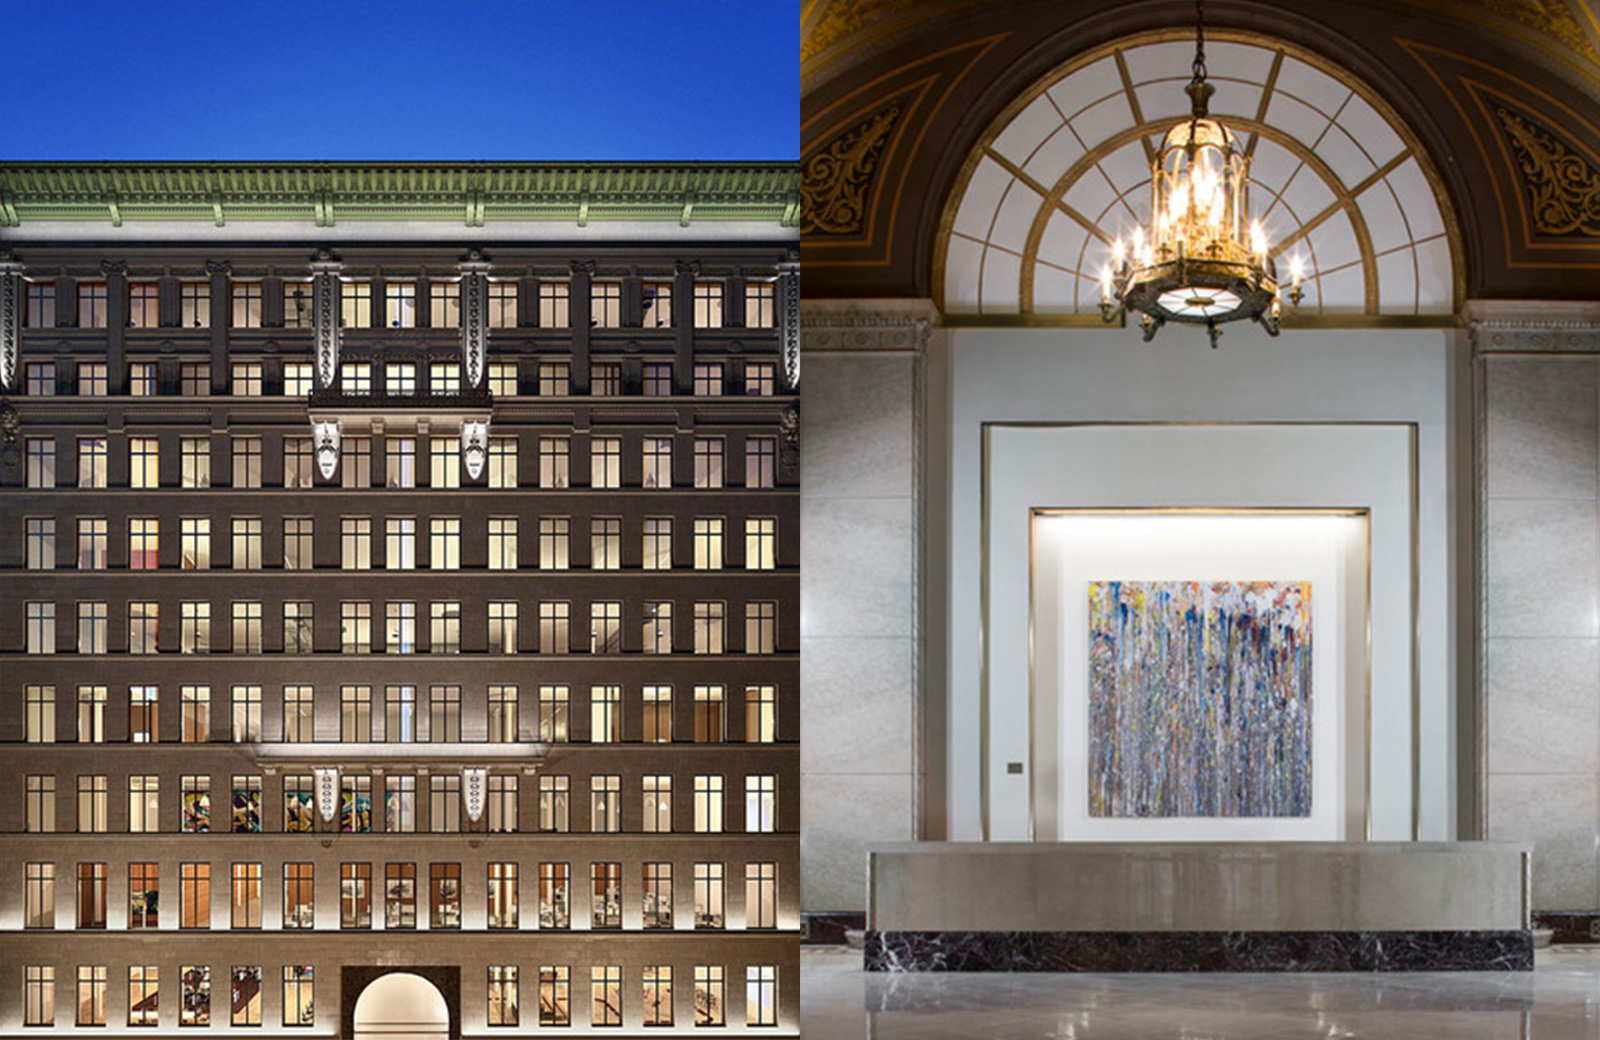 11 Penn NYC, where SP01 Caristo chairs will be featured in the new Apple HQ